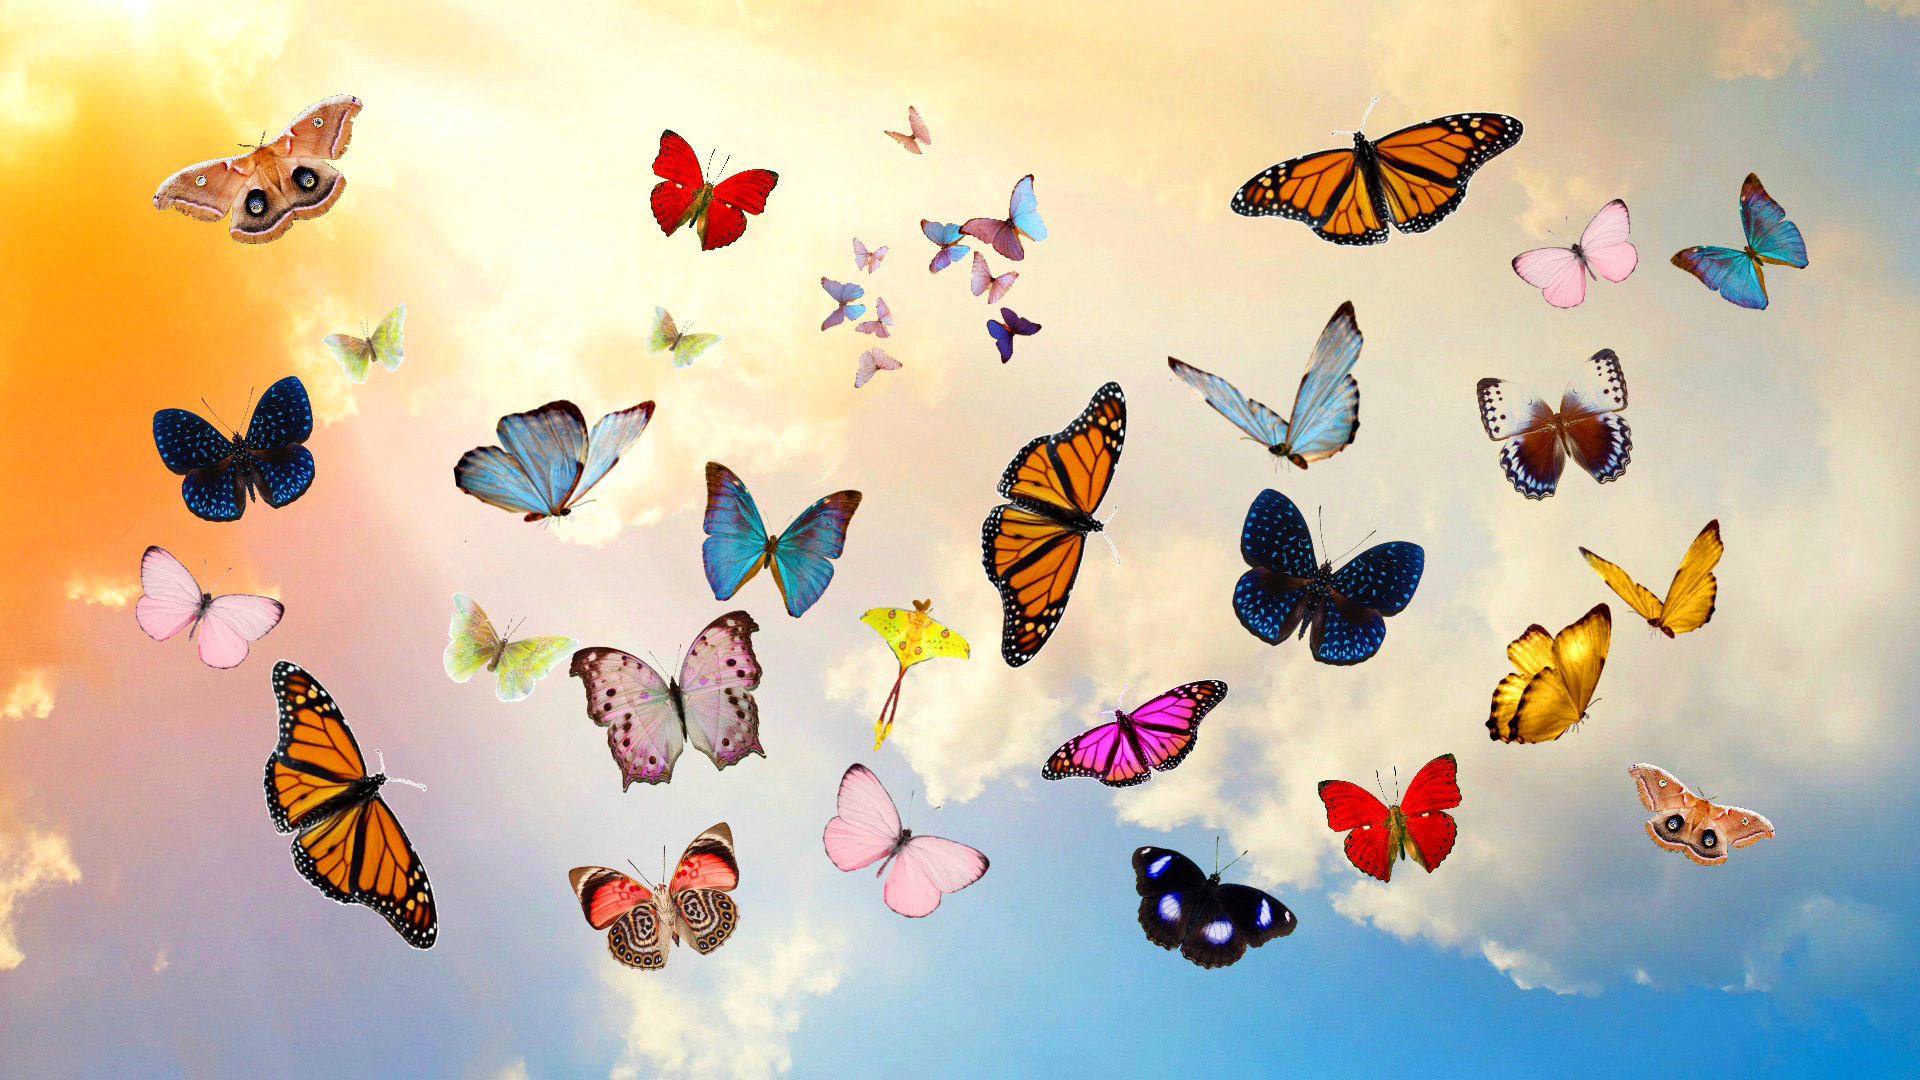 Colorful Butterflies Hd Wallpaper Background Image 1920x1080